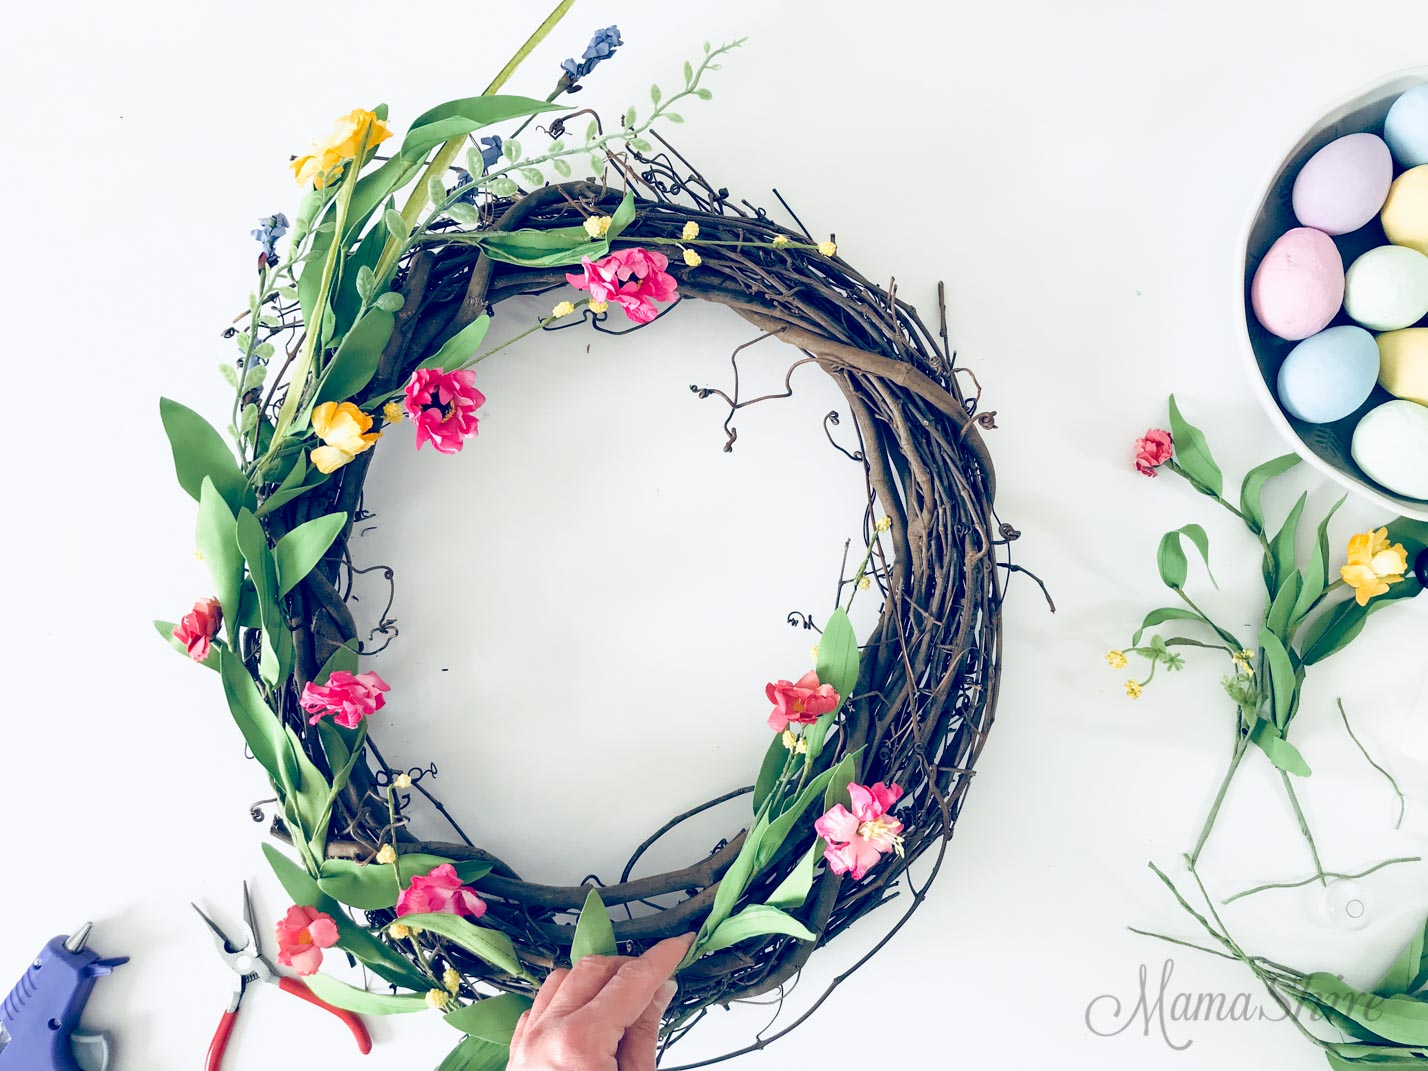 Assembling the wreath with flowers.